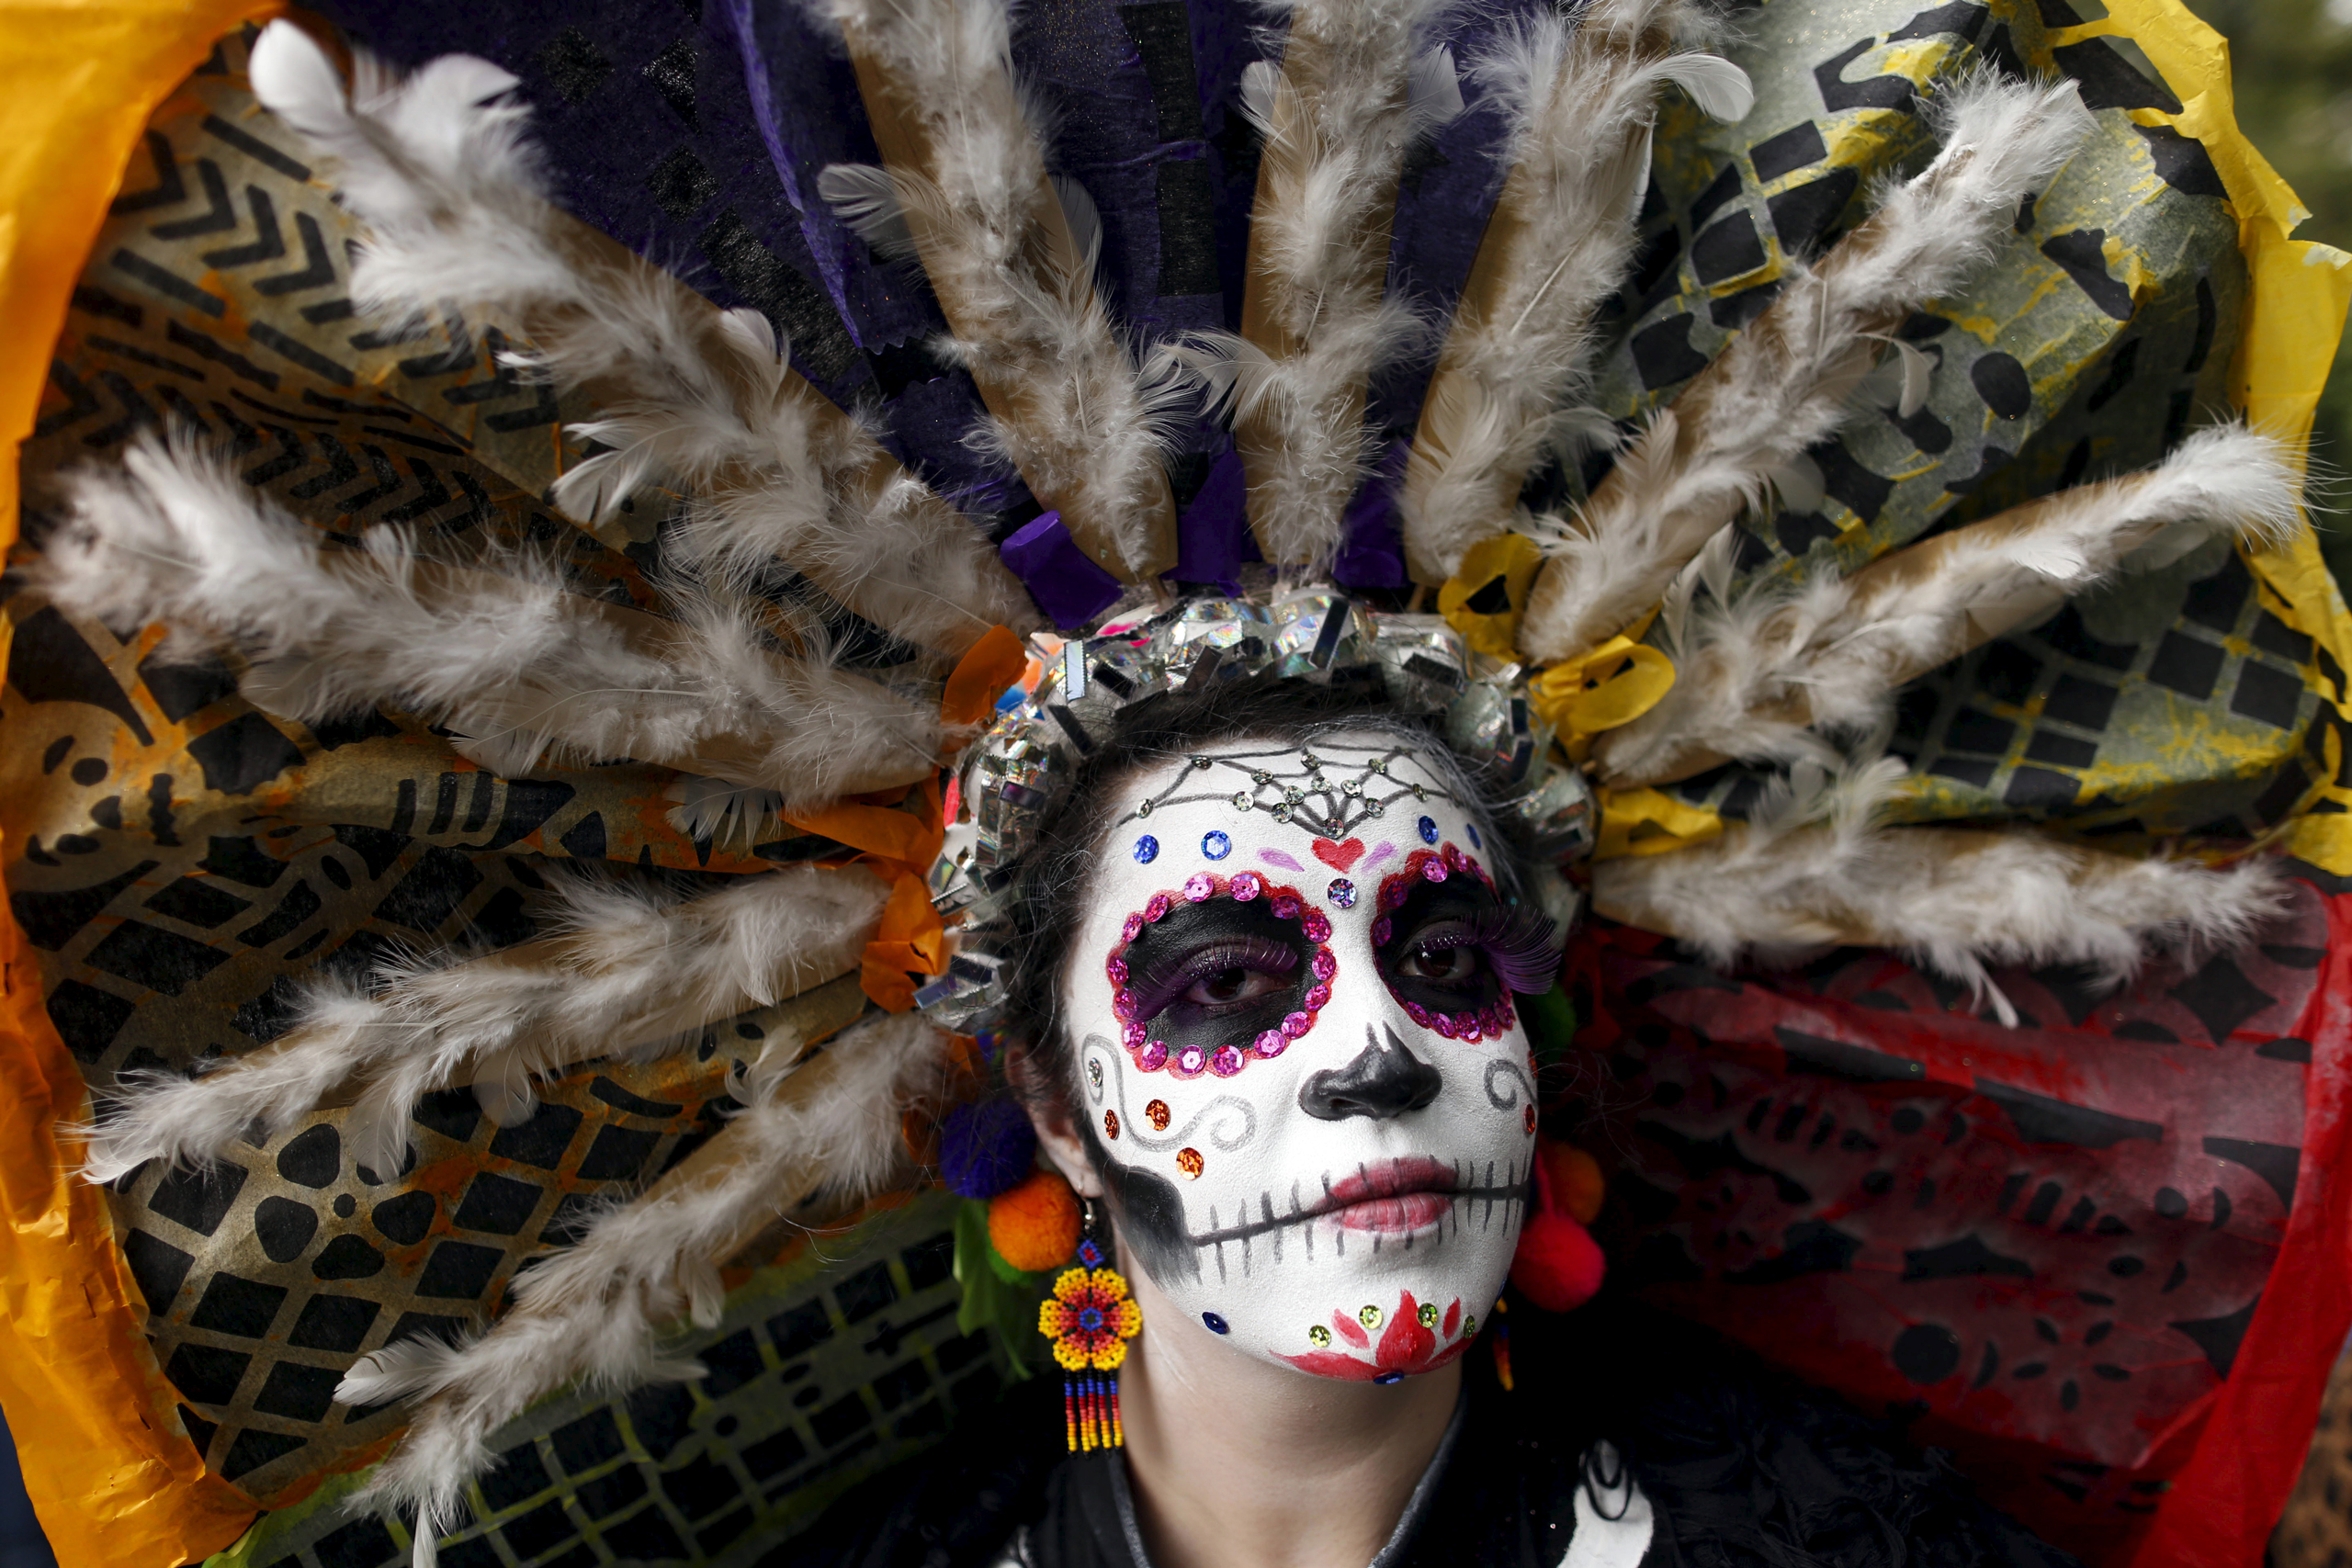 A woman with her face painted to look like the popular Mexican figure called  Catrina , poses for a photograph as she takes part in the annual Catrina Fest in Mexico City on Nov. 1, 2015.